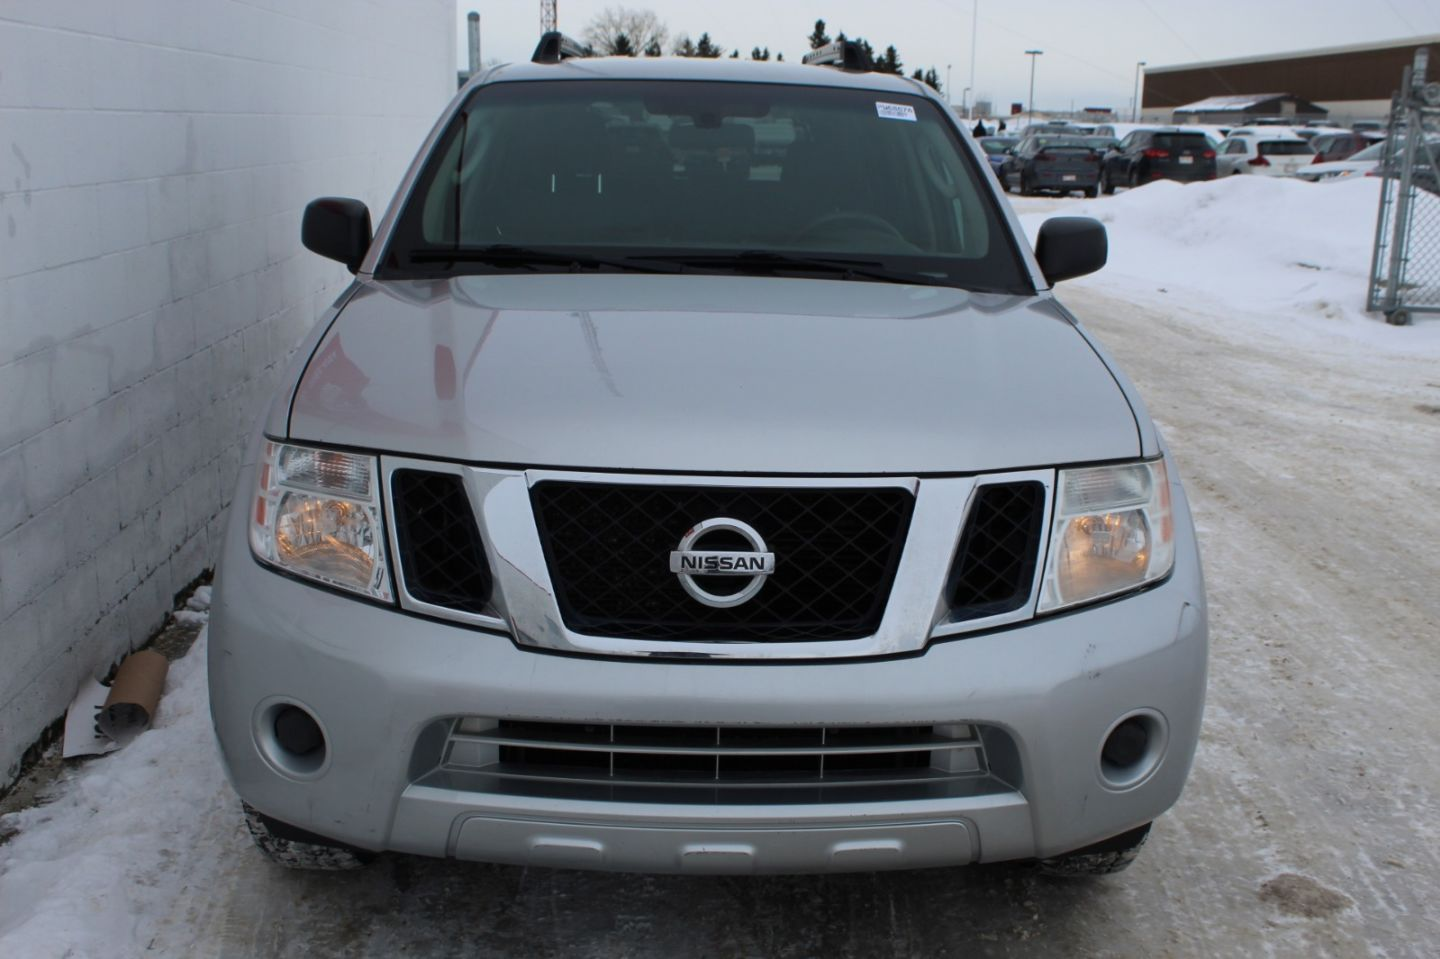 2010 Nissan Pathfinder S for sale in ,